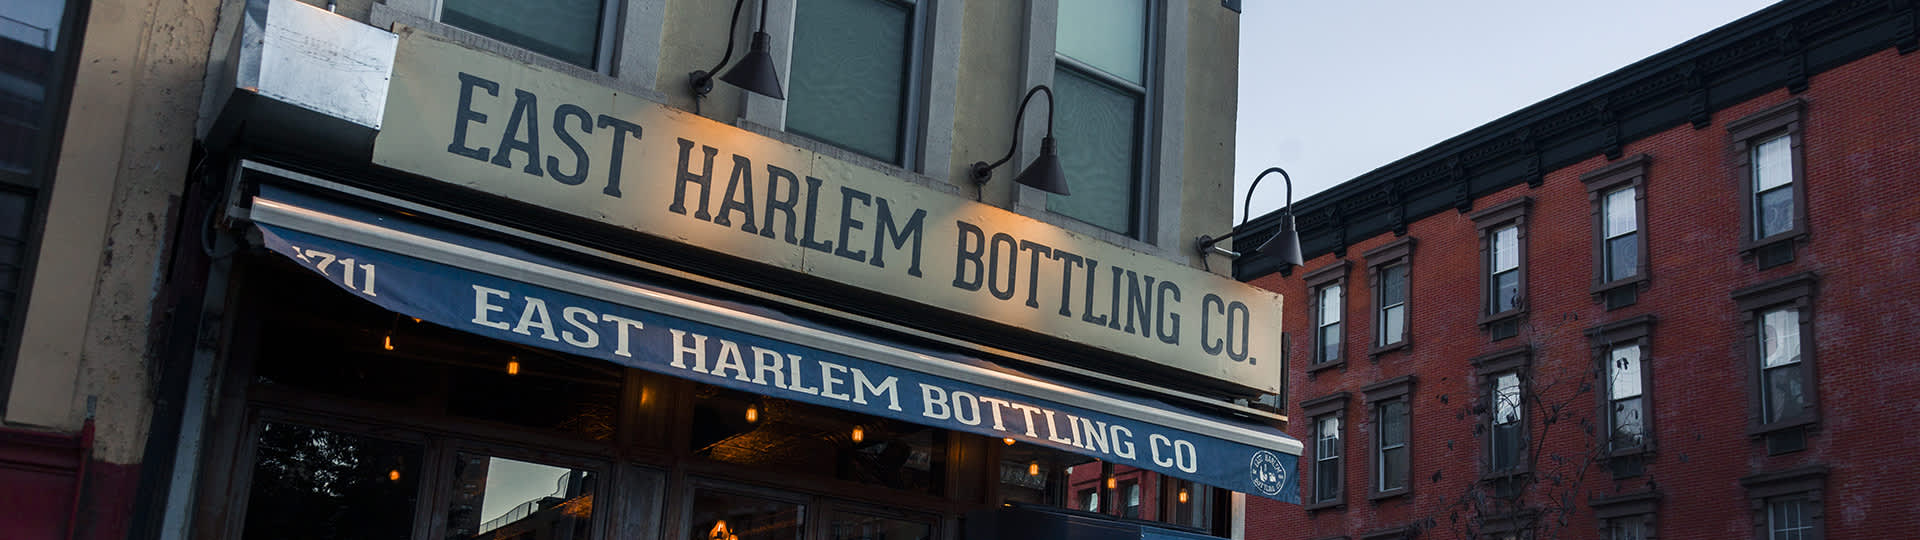 East Harlem, East Harlem Bottling Co,